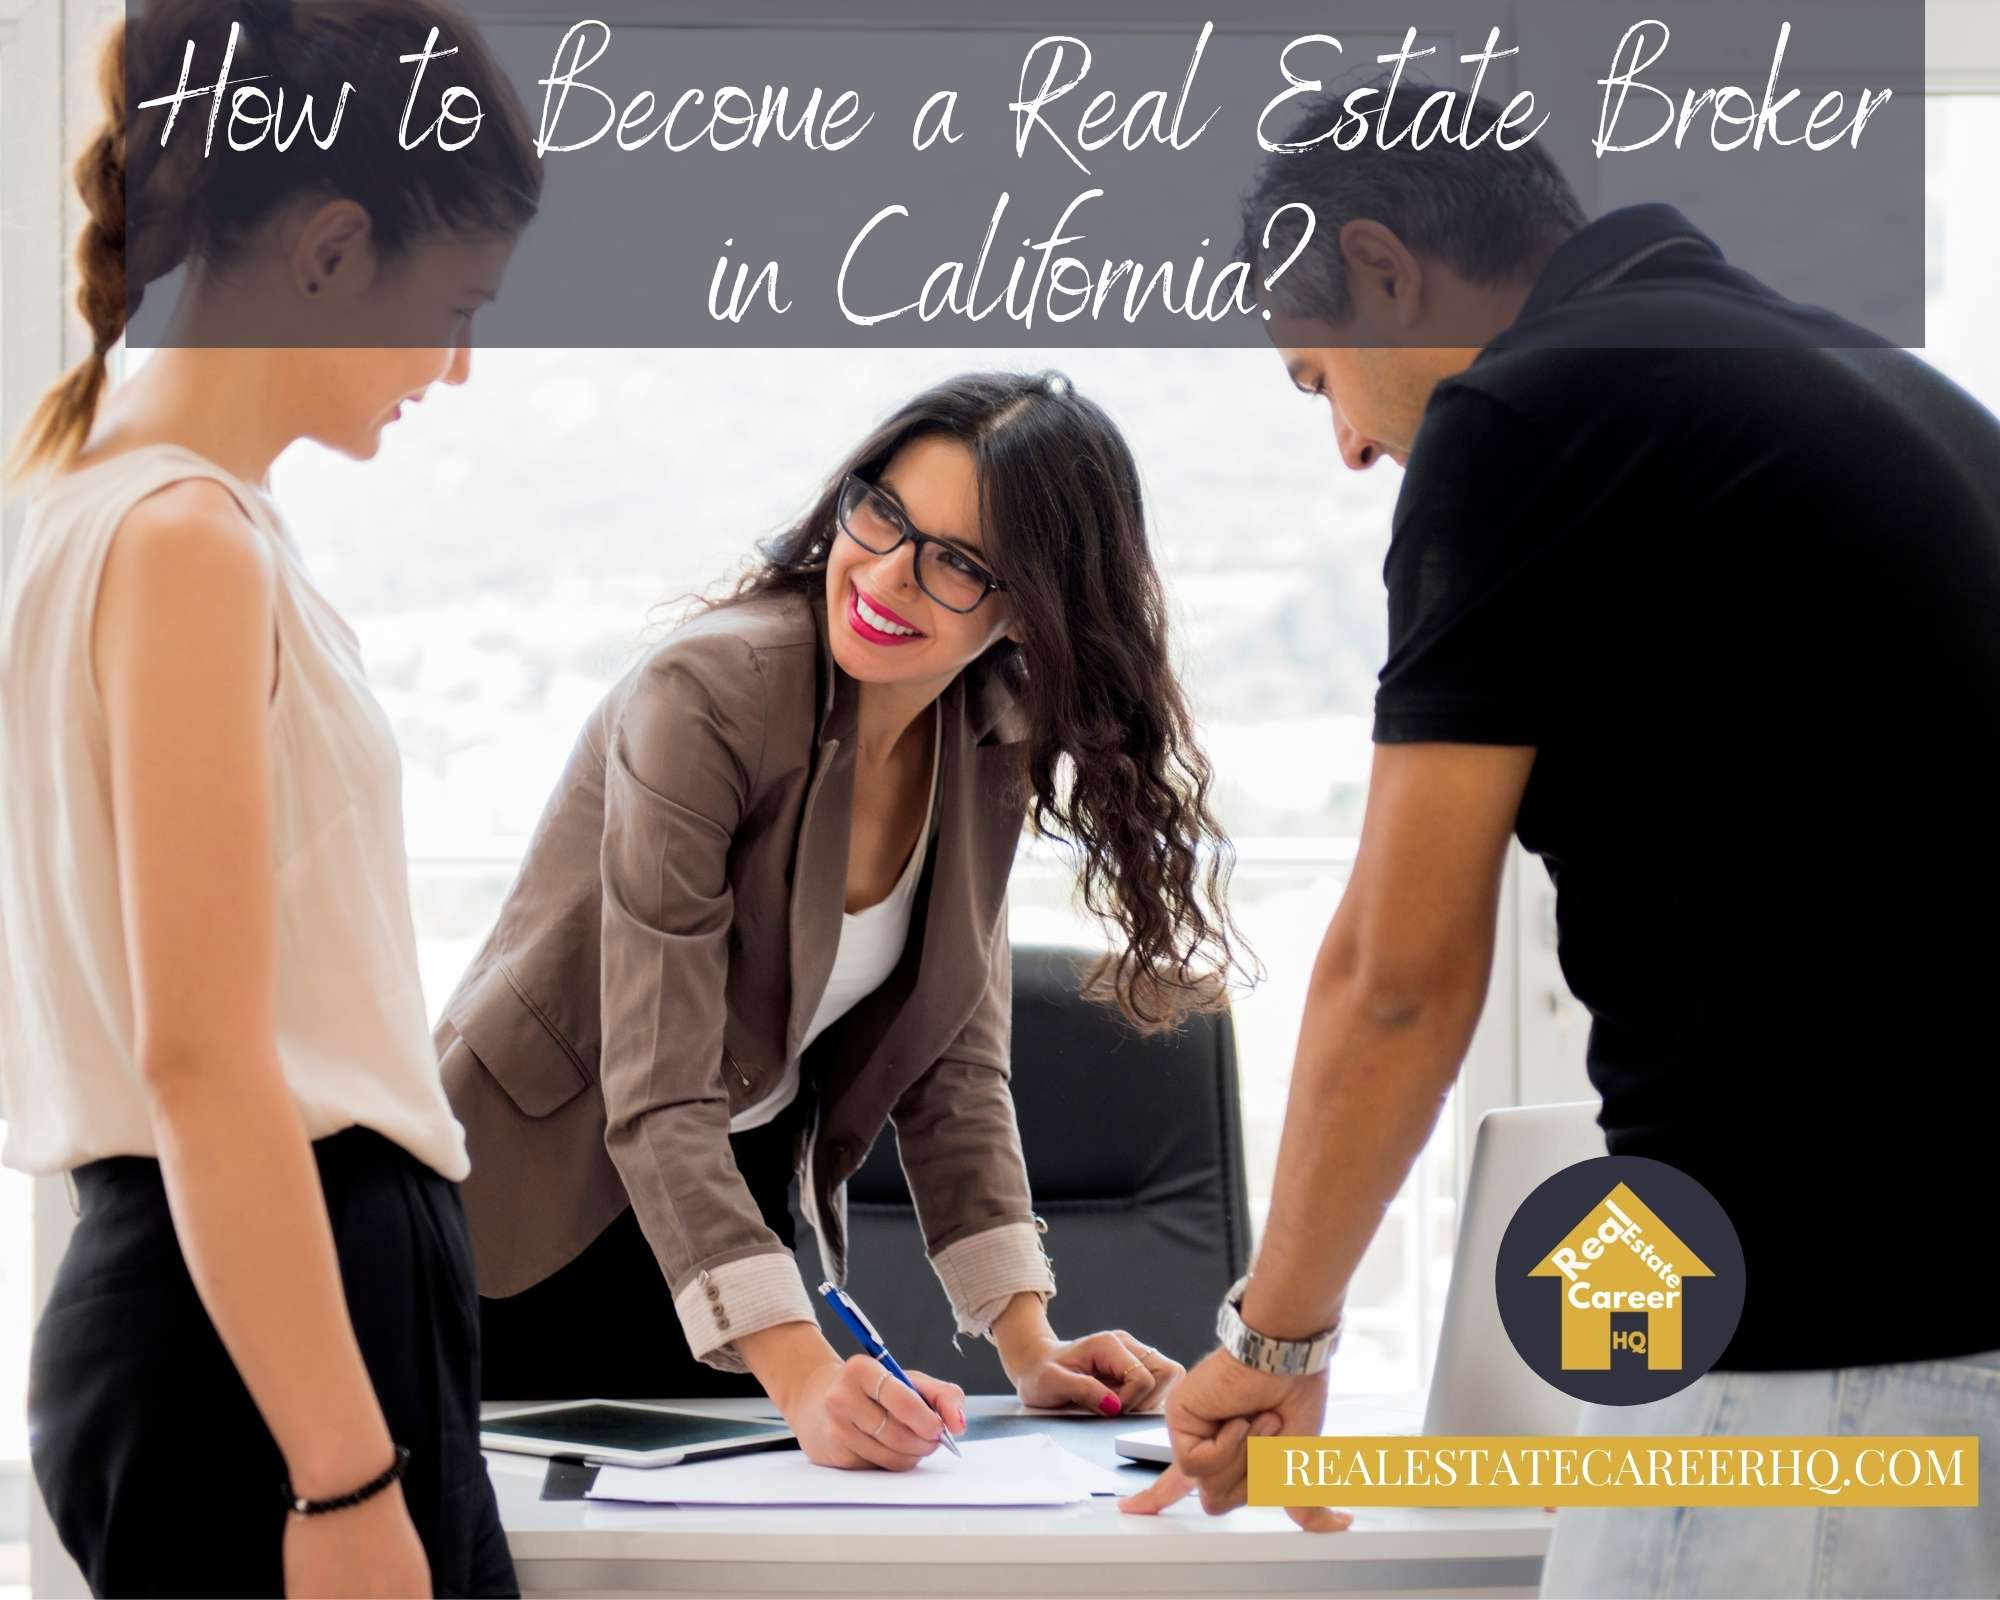 How to become a real estate broker in California?